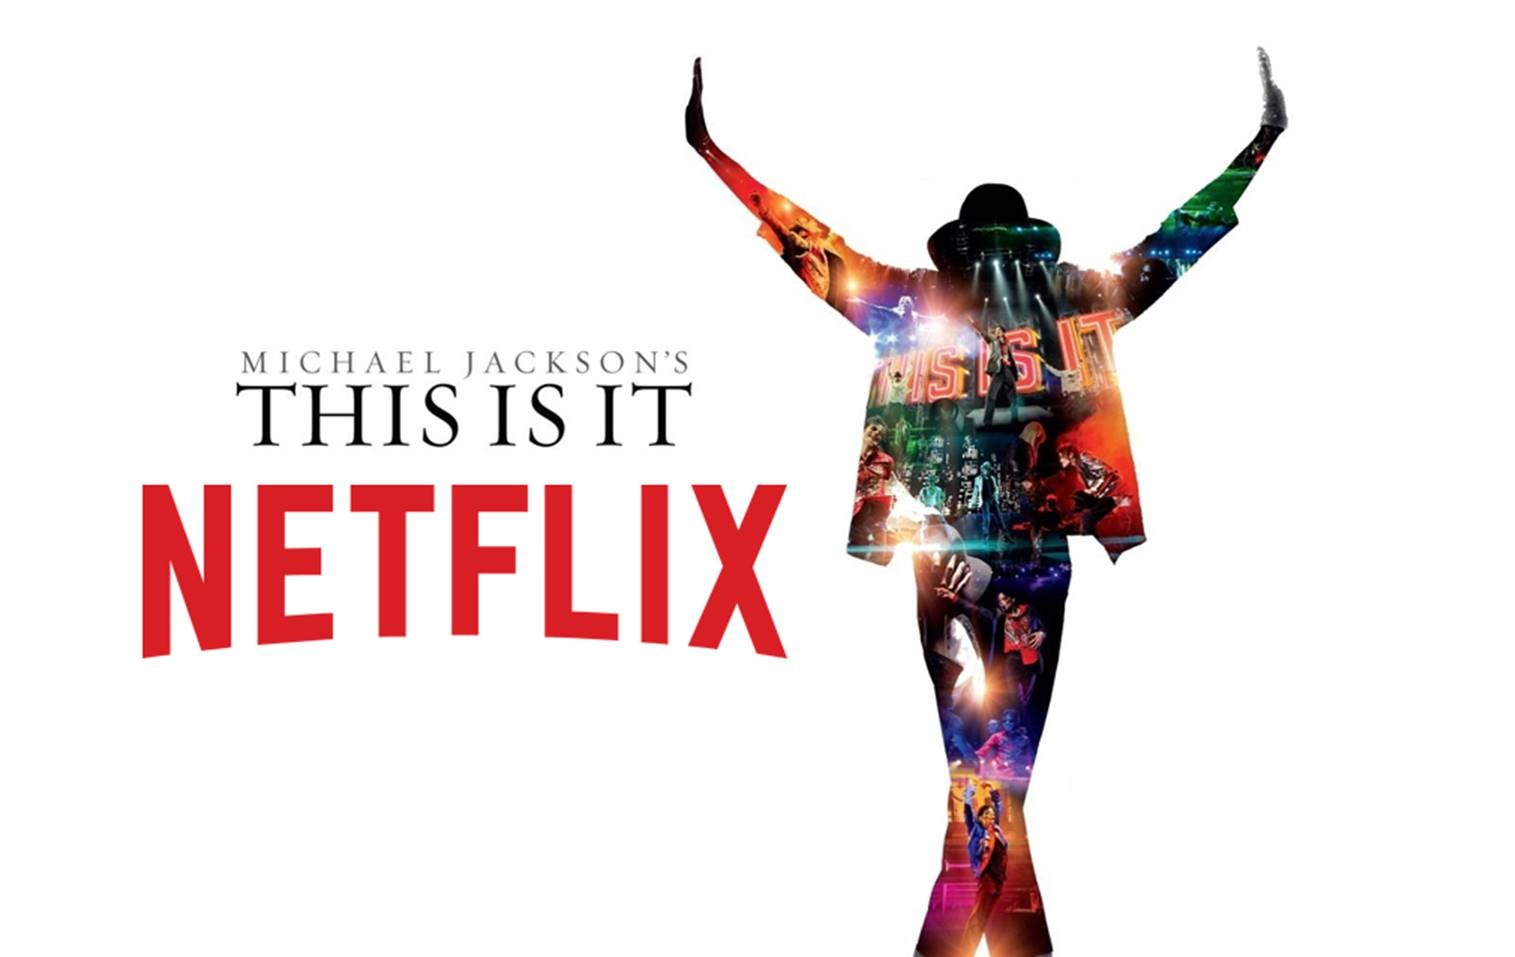 Netflix-this-is-it.jpg